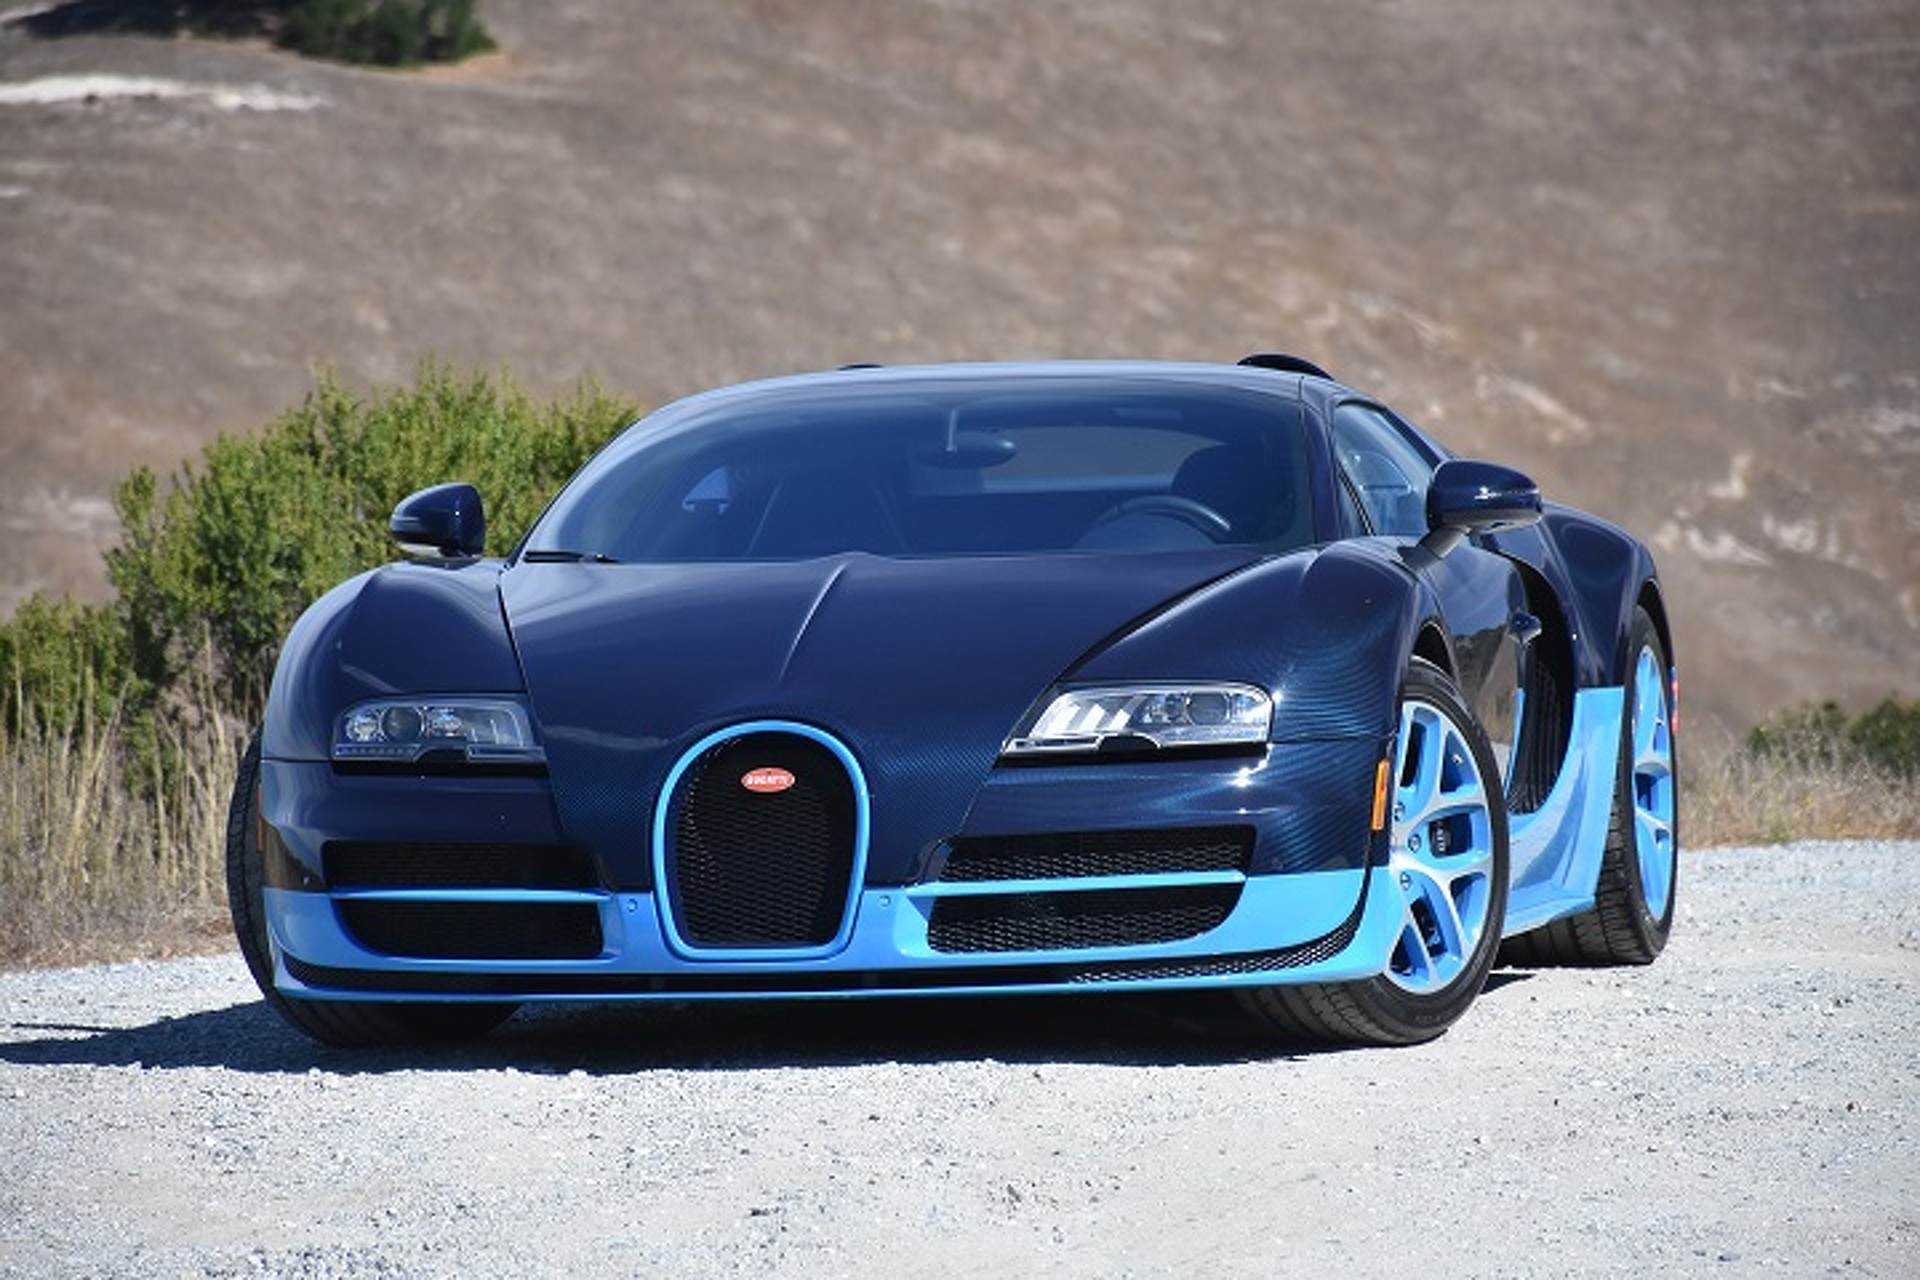 The Bugatti Veyron Is The Closest You Ll Get To A Fighter Jet First